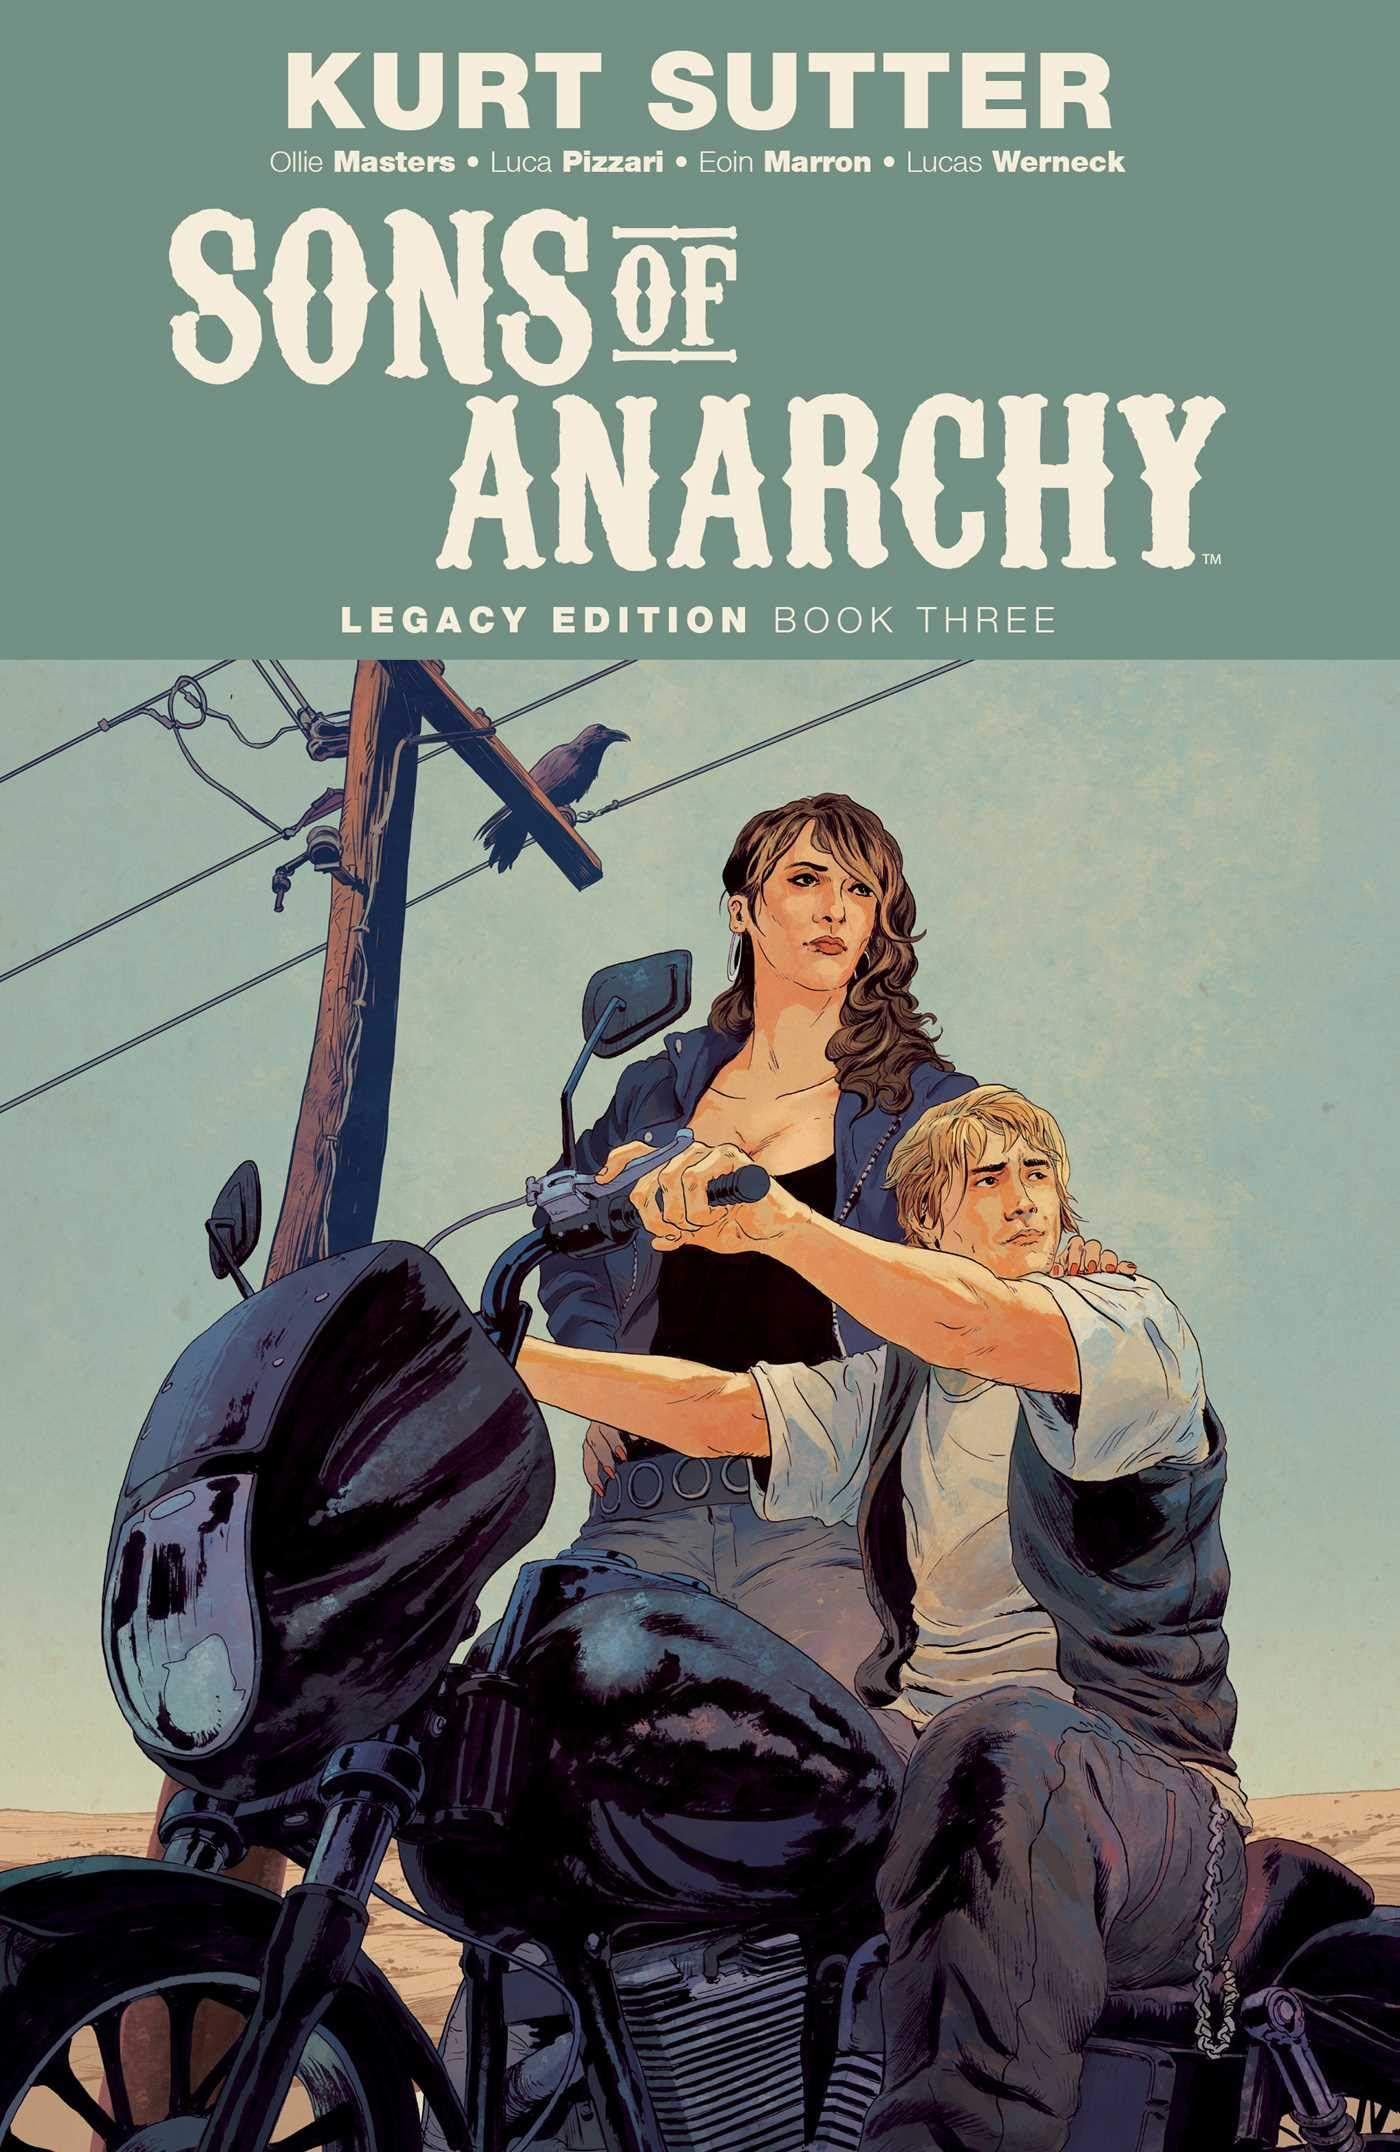 Sons of Anarchy Legacy Edition Book Three Paperback July